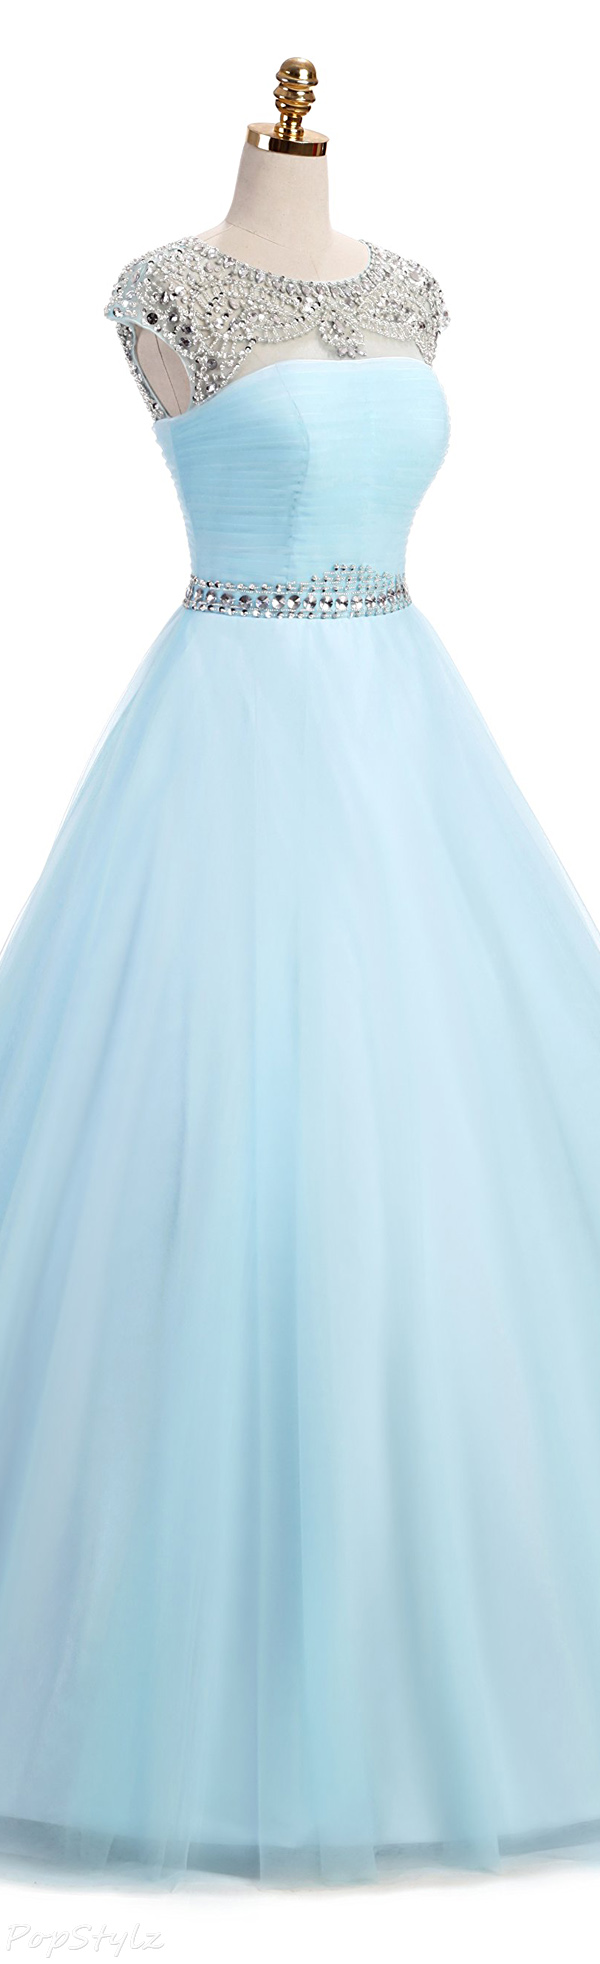 Milano Bride Illusion Neck Beaded Tulle Ball Gown